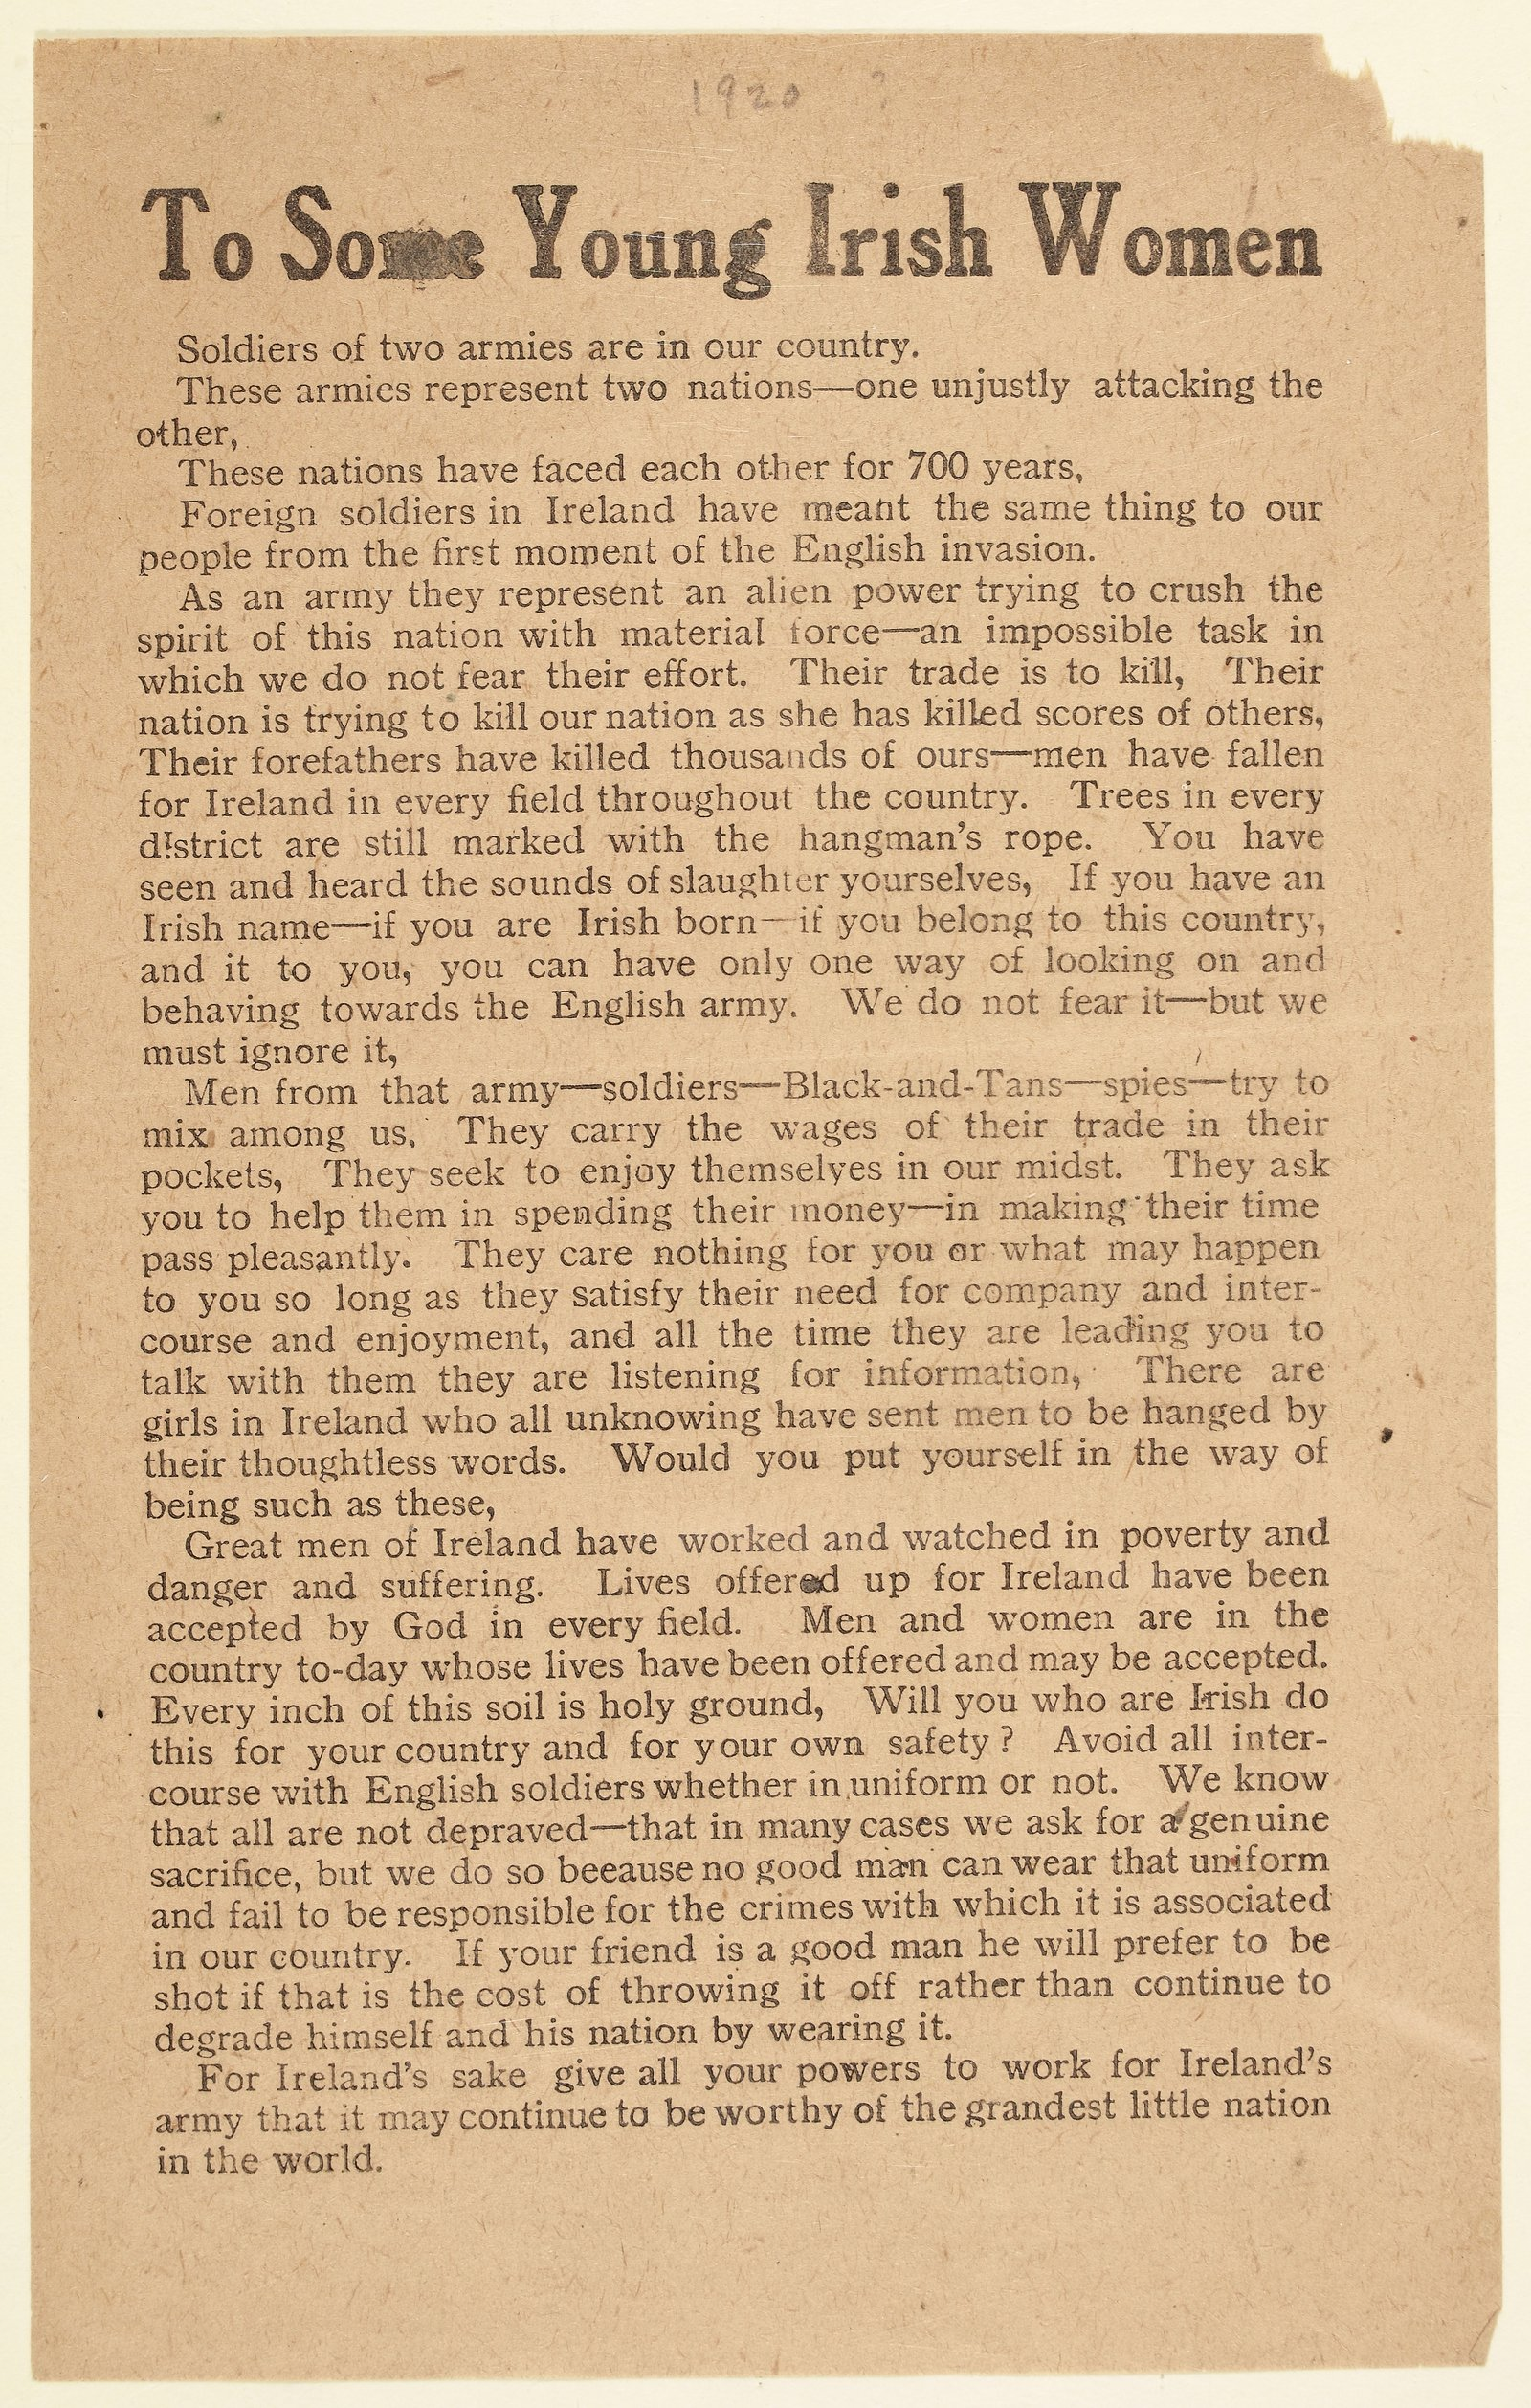 Image - Cumann na mBan 1920 leaflet urging young women not to consort with British forces (National Library)